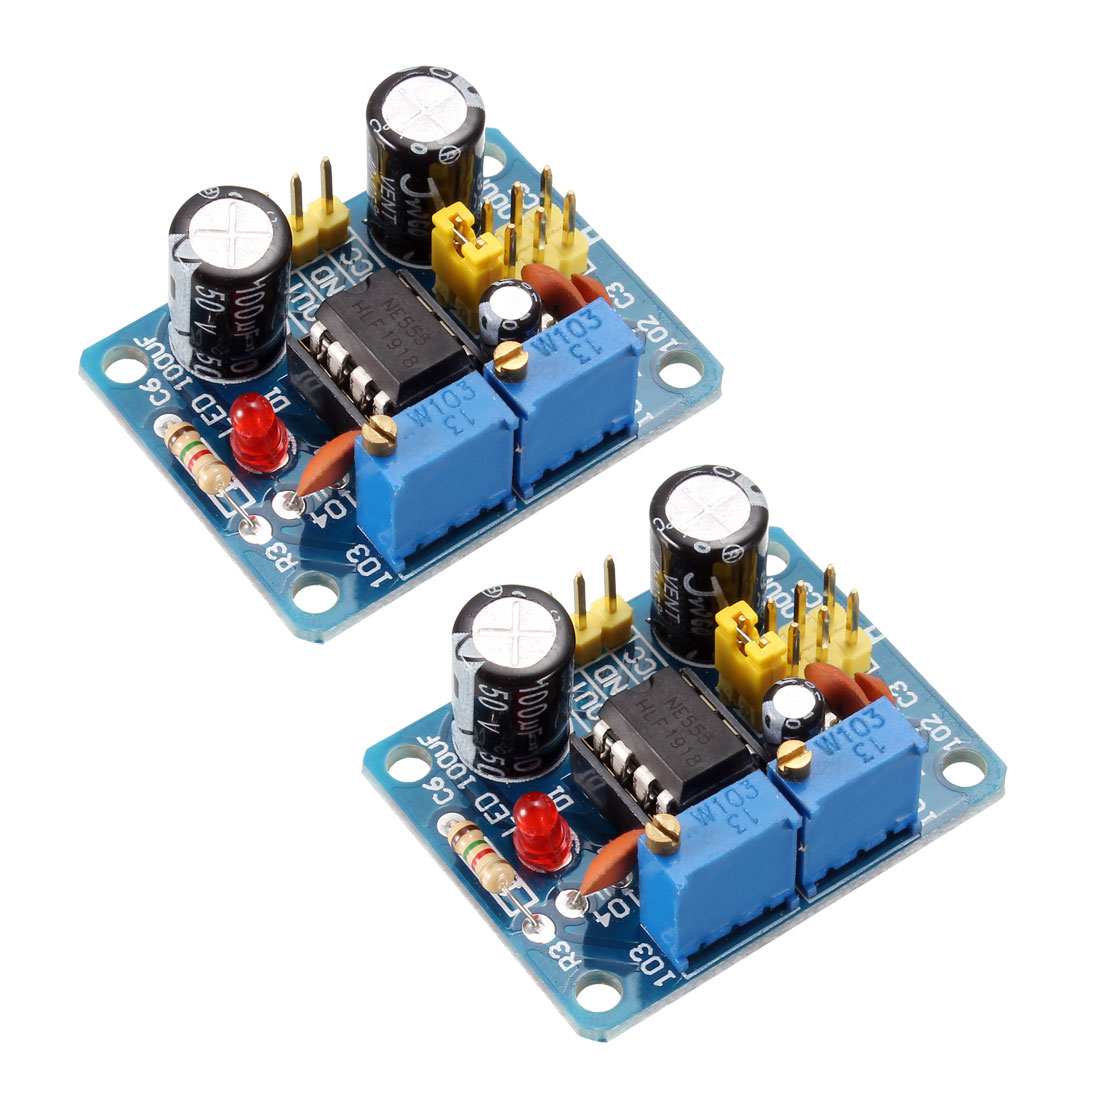 NE555 Square Wave Output Pulse Module with Adjustable Frequency Diode LED 2pcs